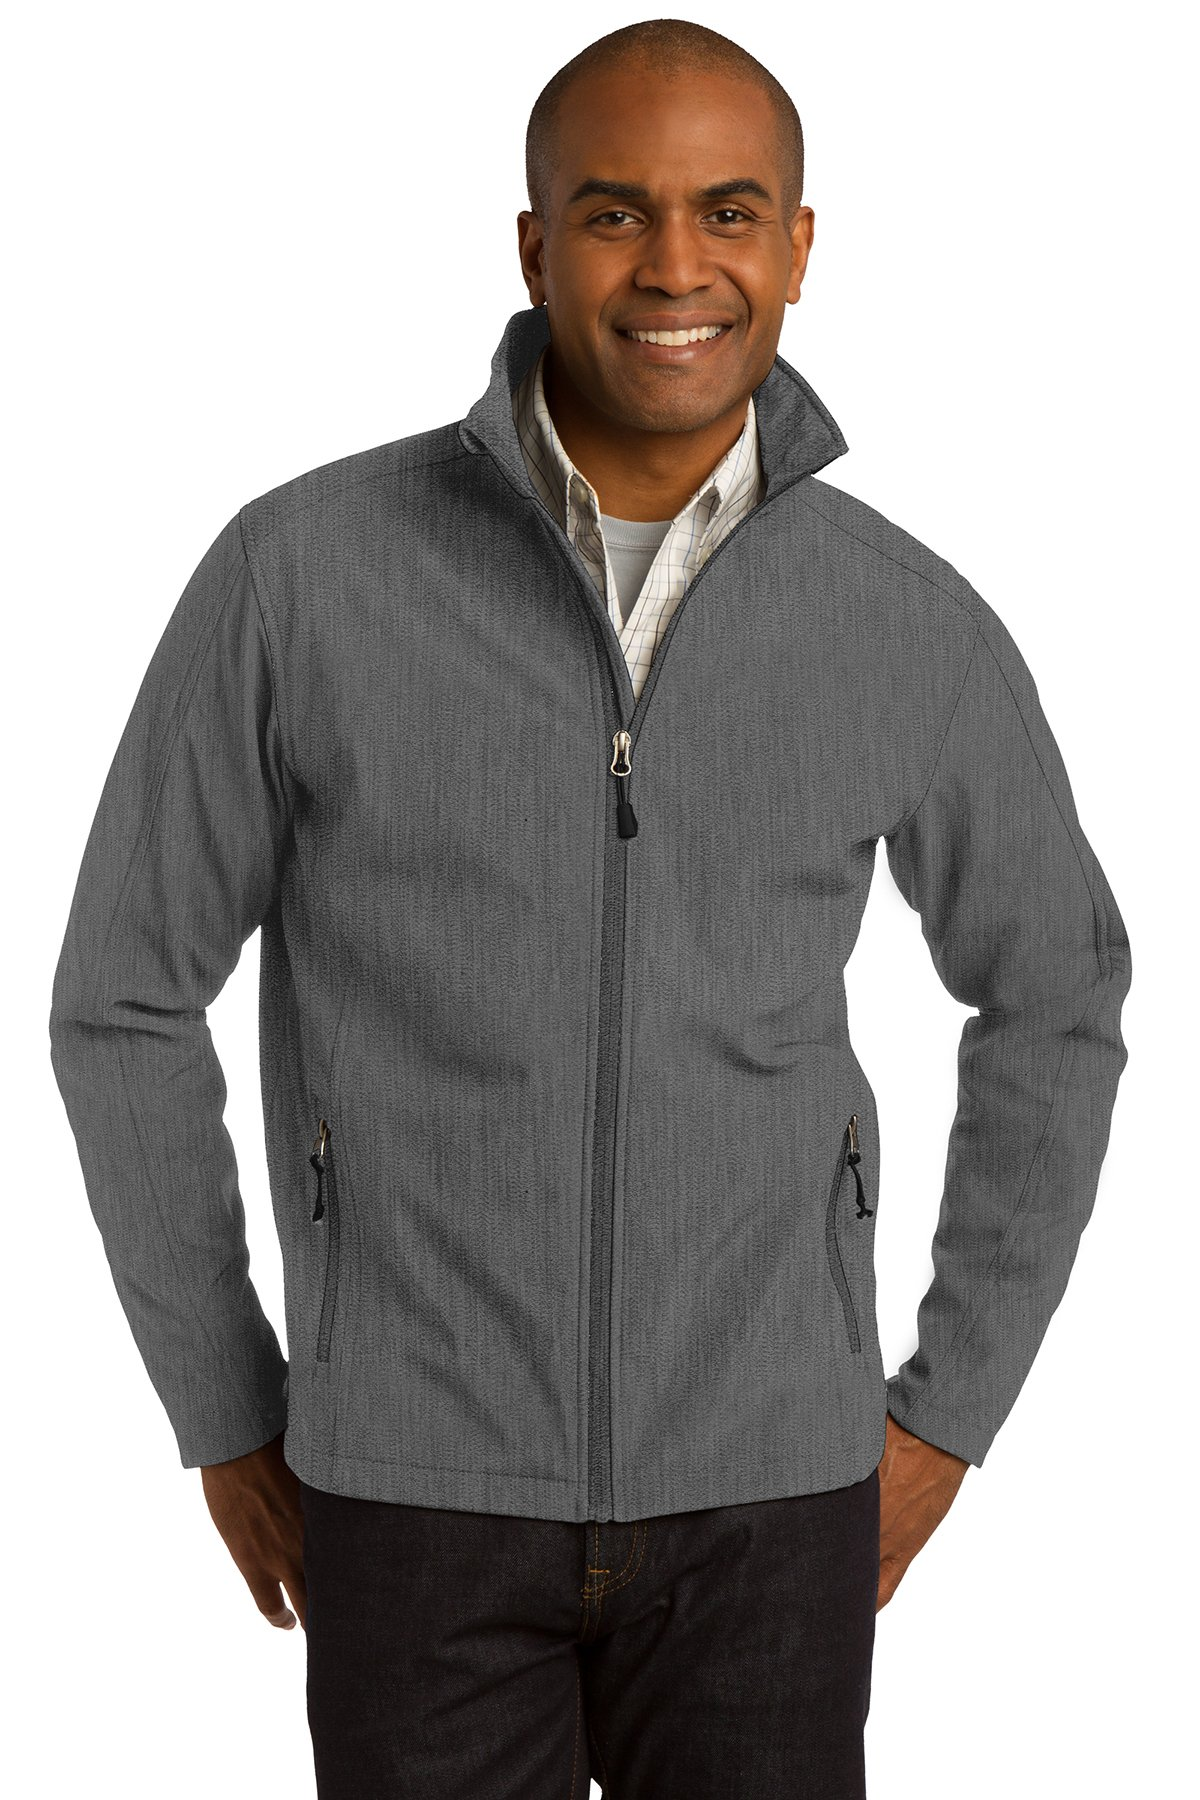 Port Authority Core Soft Shell Jacket - J317 (Black Charcoal Heather, M) by Port Authority